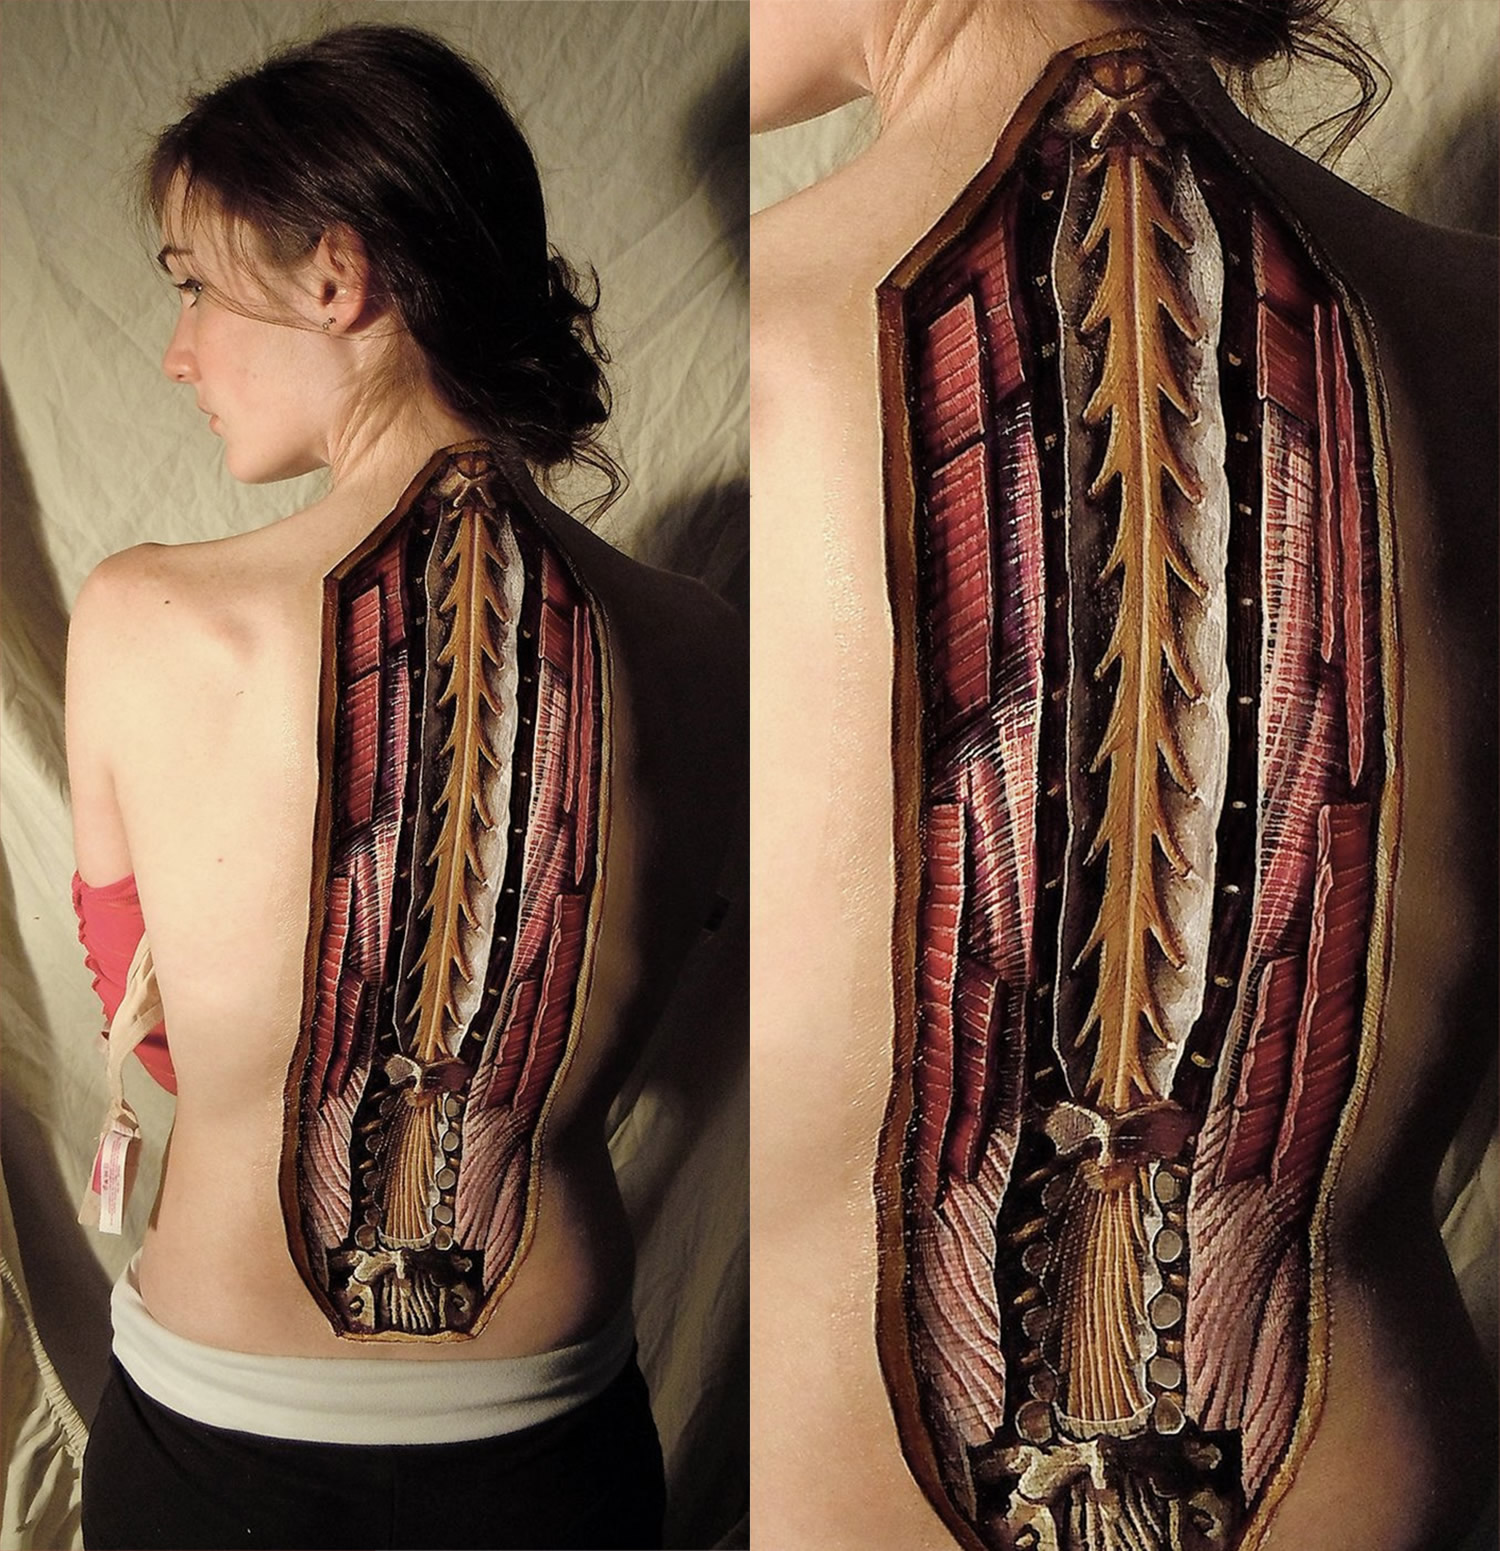 spine body painting by danny quirk